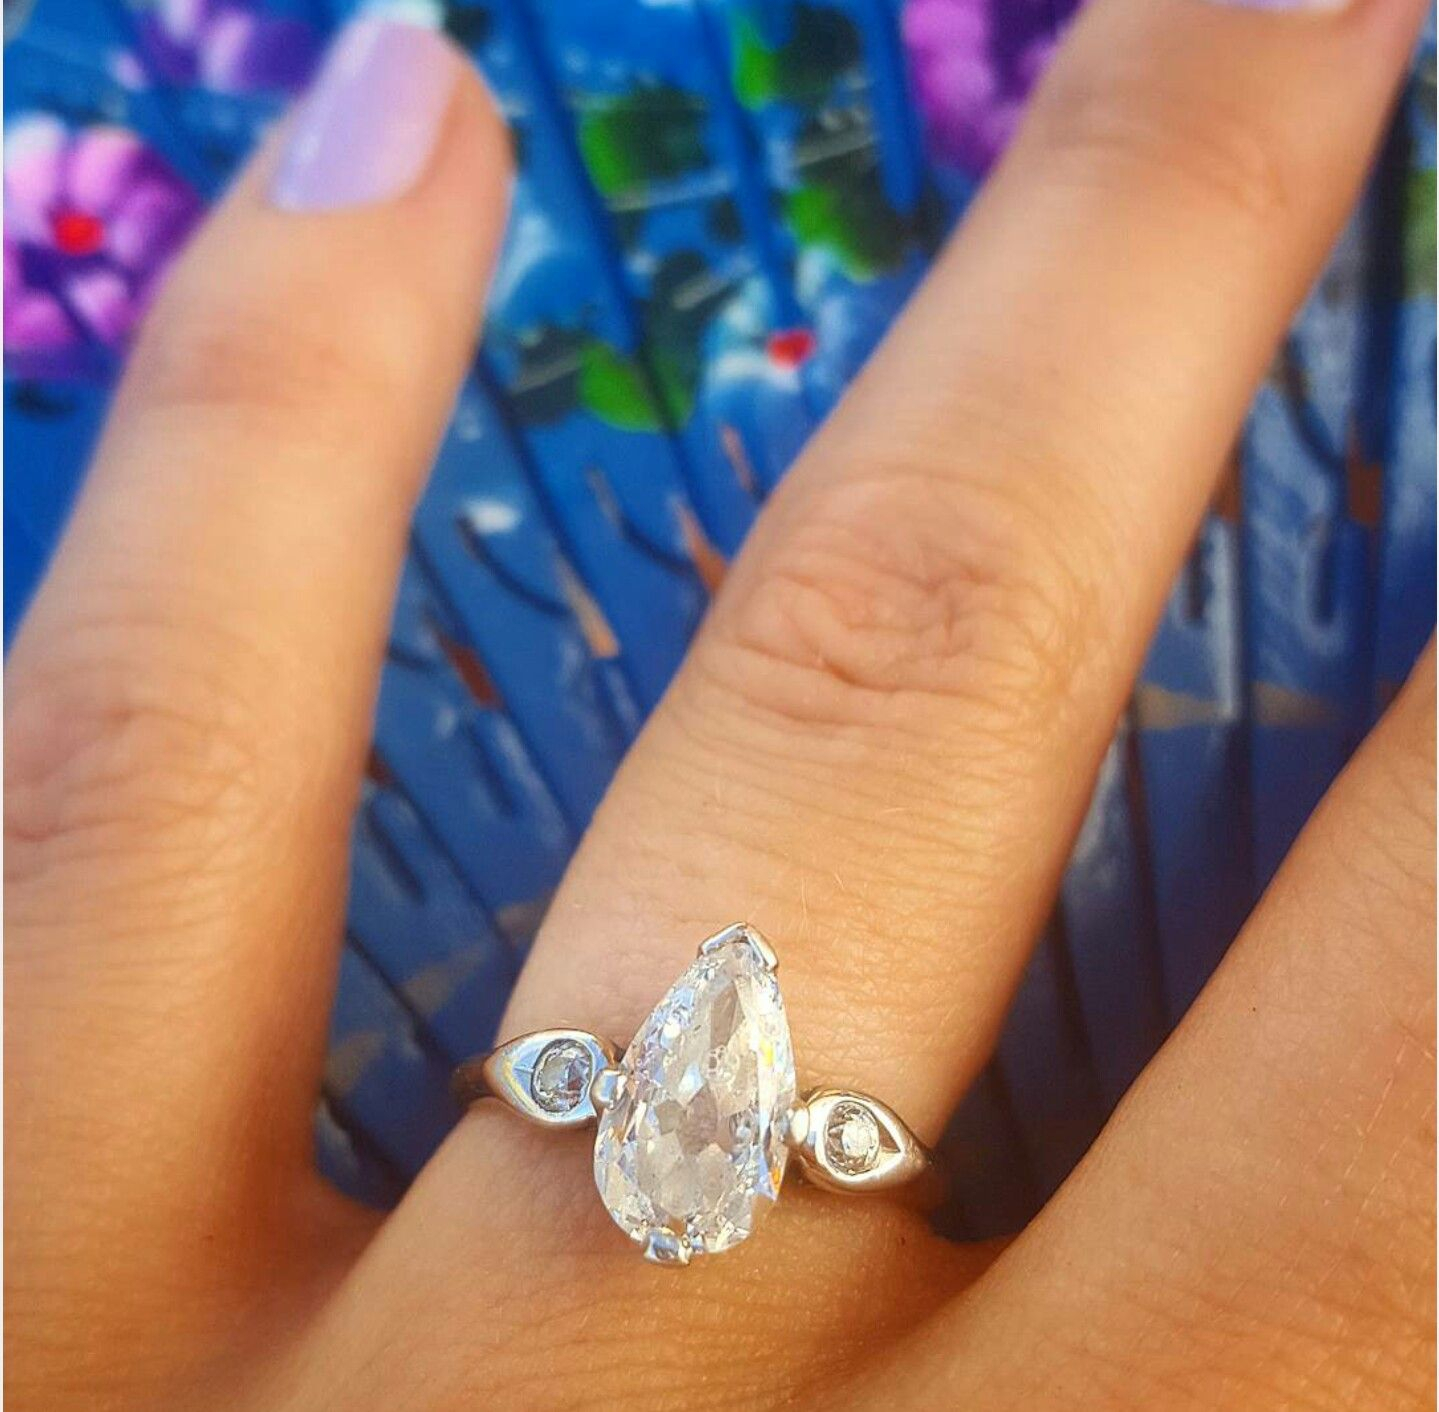 Unique Engagement Ring Vintage 1930s Antique Pear Shaped Teardrop Intended For Most Popular Classic Teardrop Halo Rings (View 1 of 25)